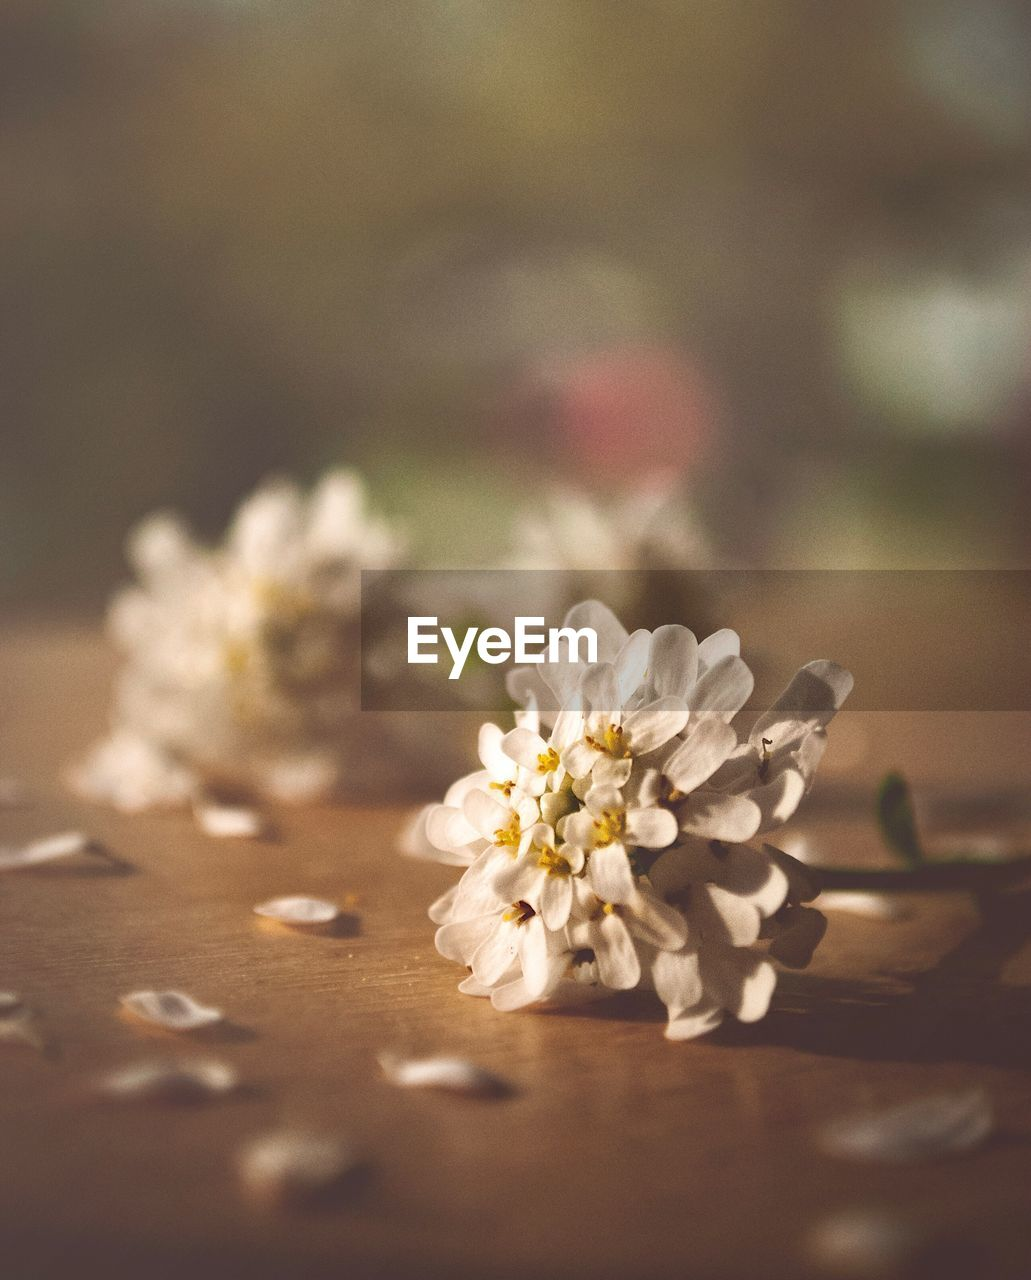 flowering plant, flower, selective focus, freshness, plant, close-up, beauty in nature, table, nature, no people, fragility, vulnerability, petal, white color, day, indoors, flower head, inflorescence, botany, cherry blossom